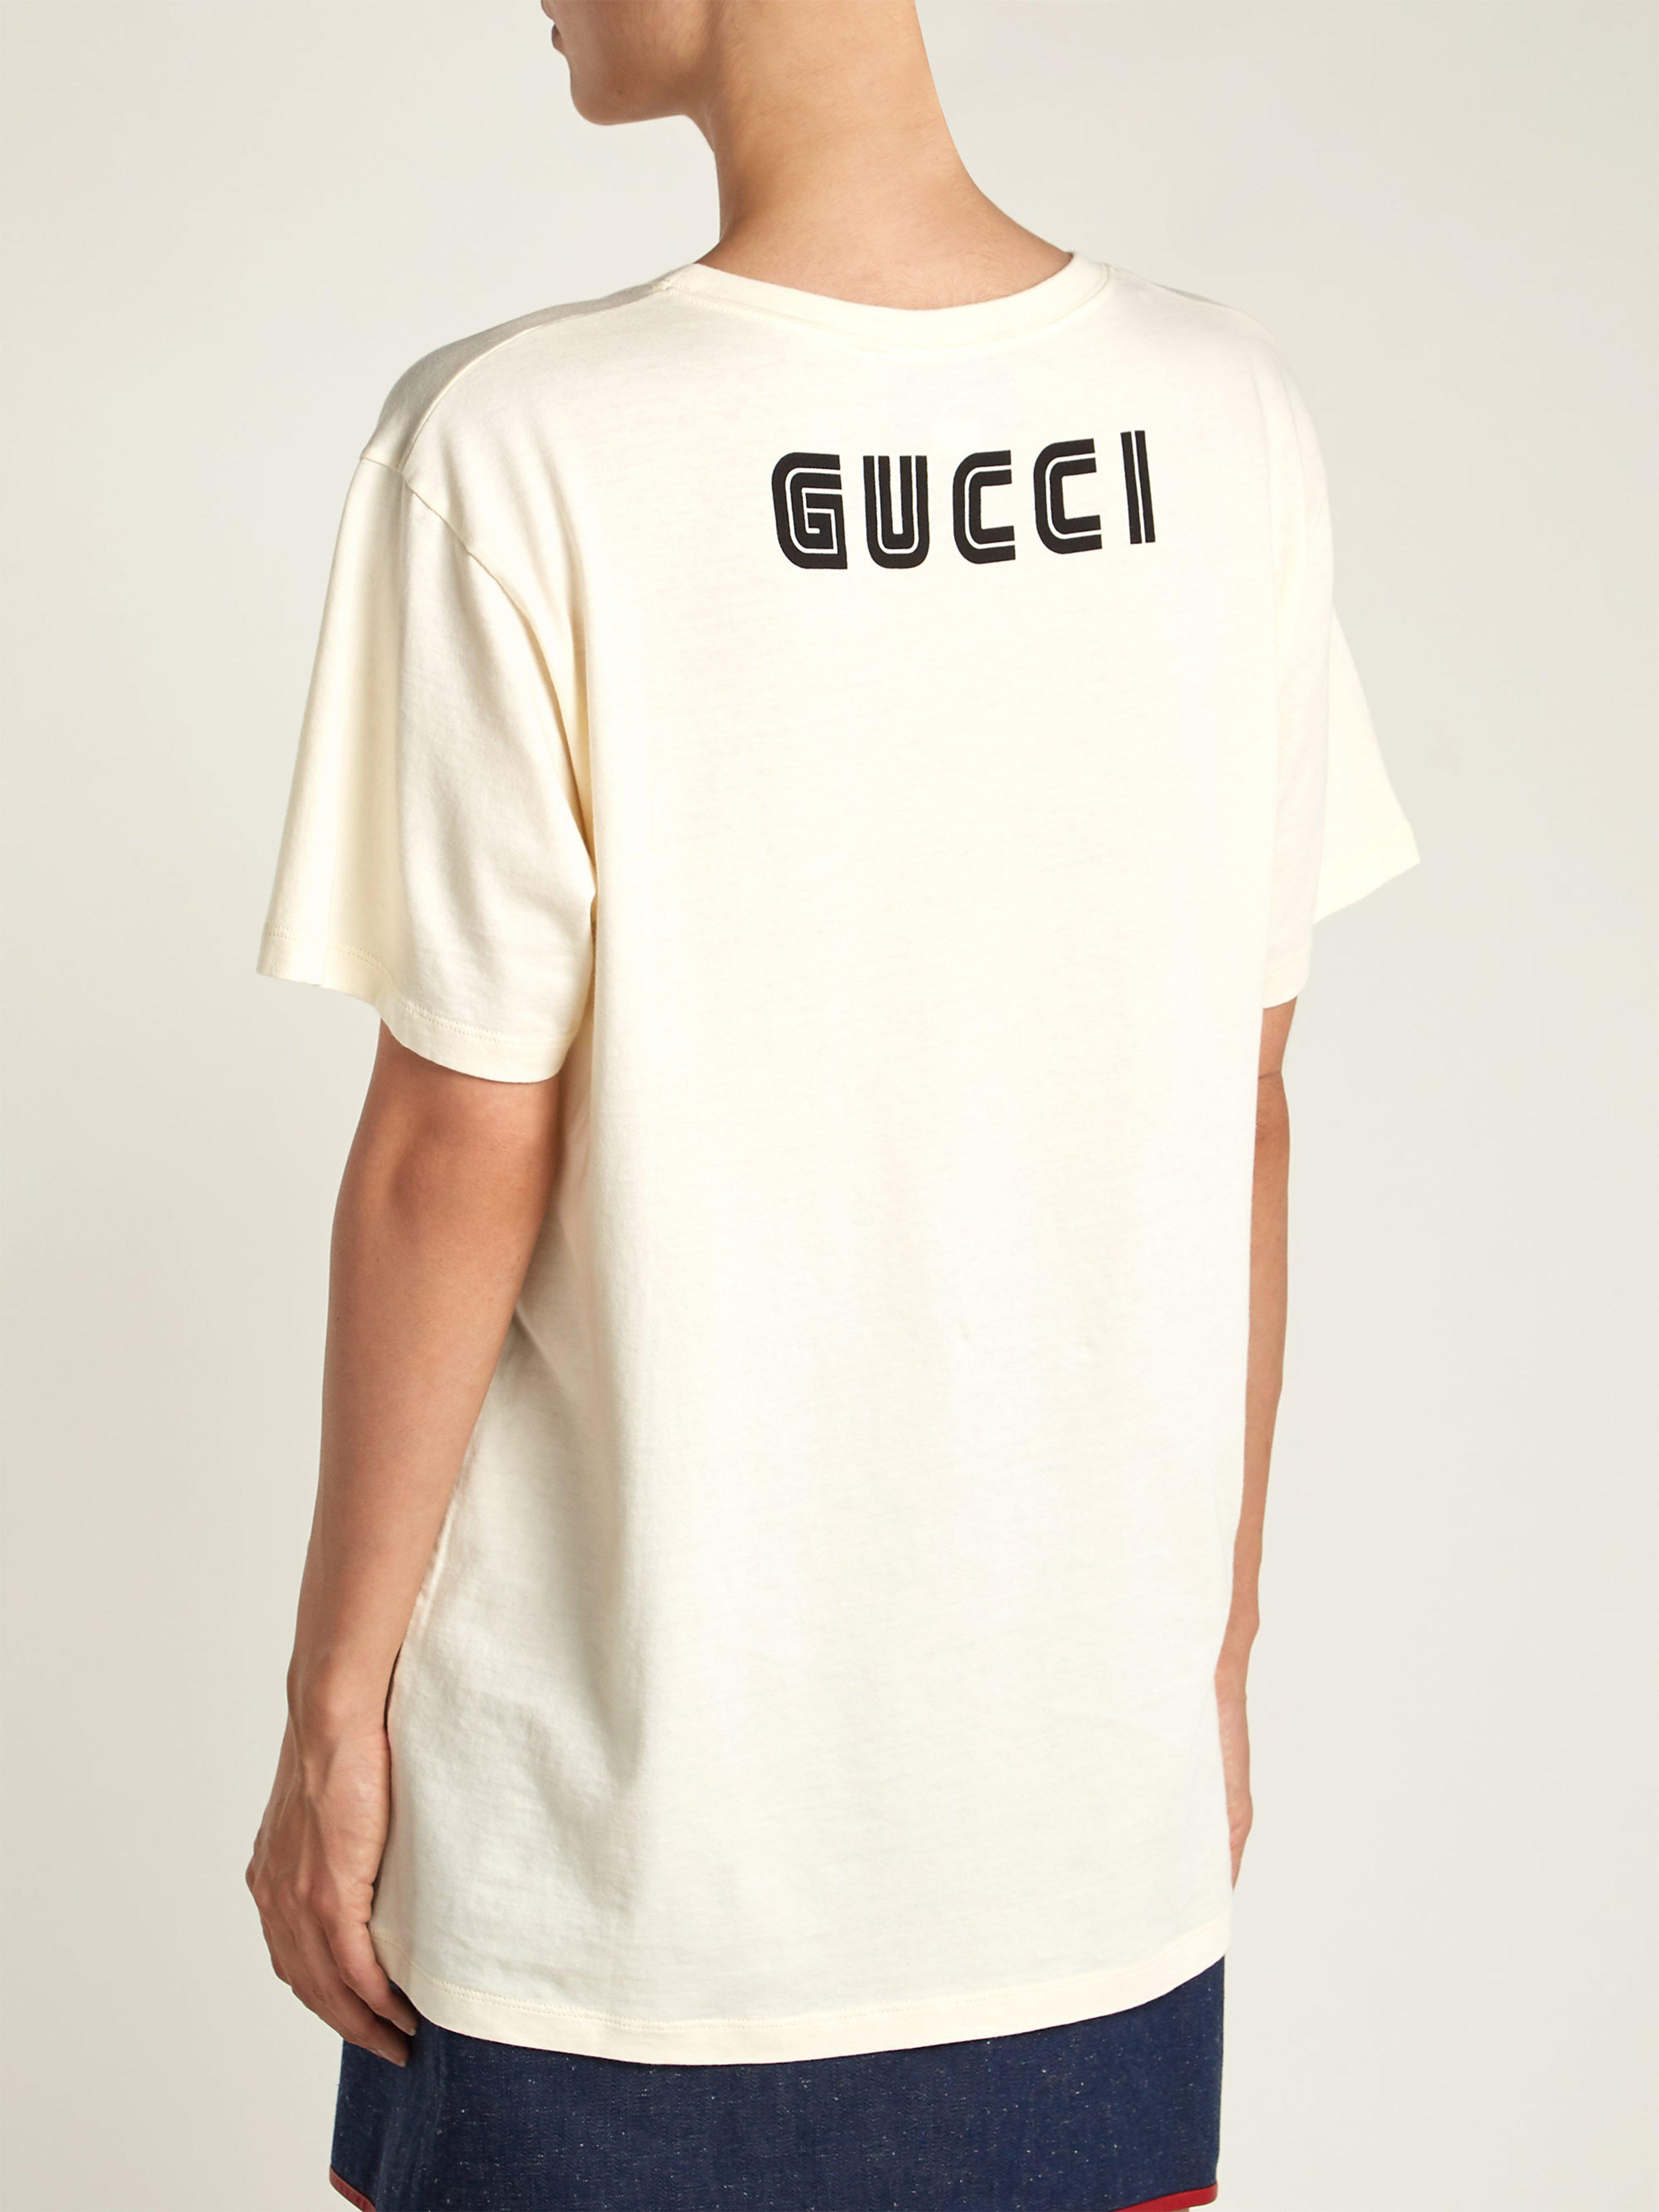 00778403d46 Gucci Rabbit Print Cotton Jersey T Shirt in White - Lyst